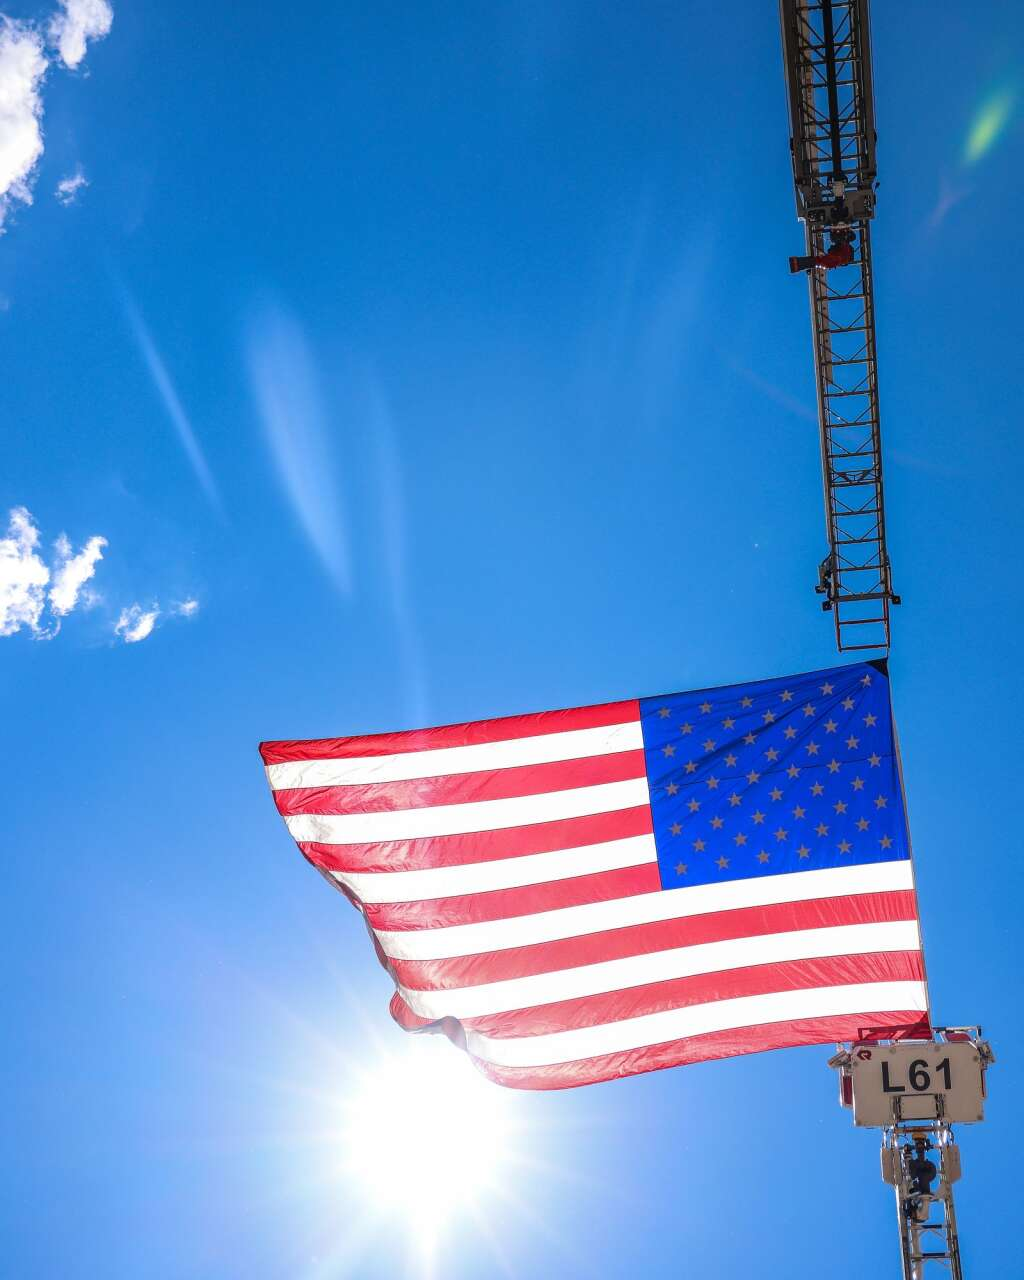 The American Flag is flown from the top of a firetruck's ladder during the Fourth of July celebration on Sunday, July 4, 2021, in downtown Aspen. Photo by Austin Colbert/The Aspen Times.